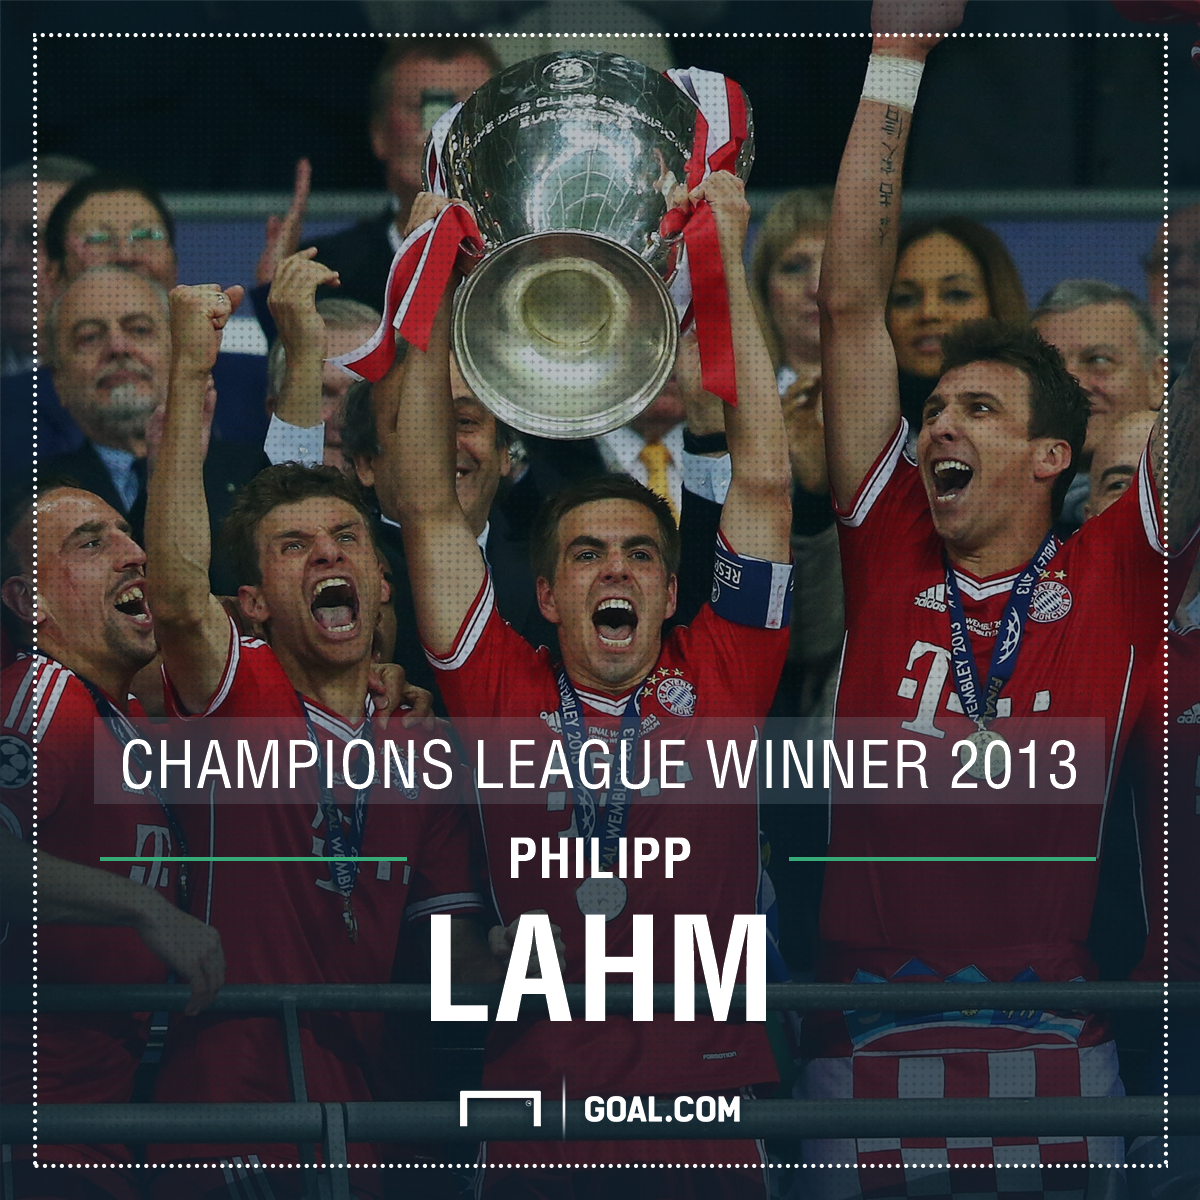 Philipp Lahm Champions League